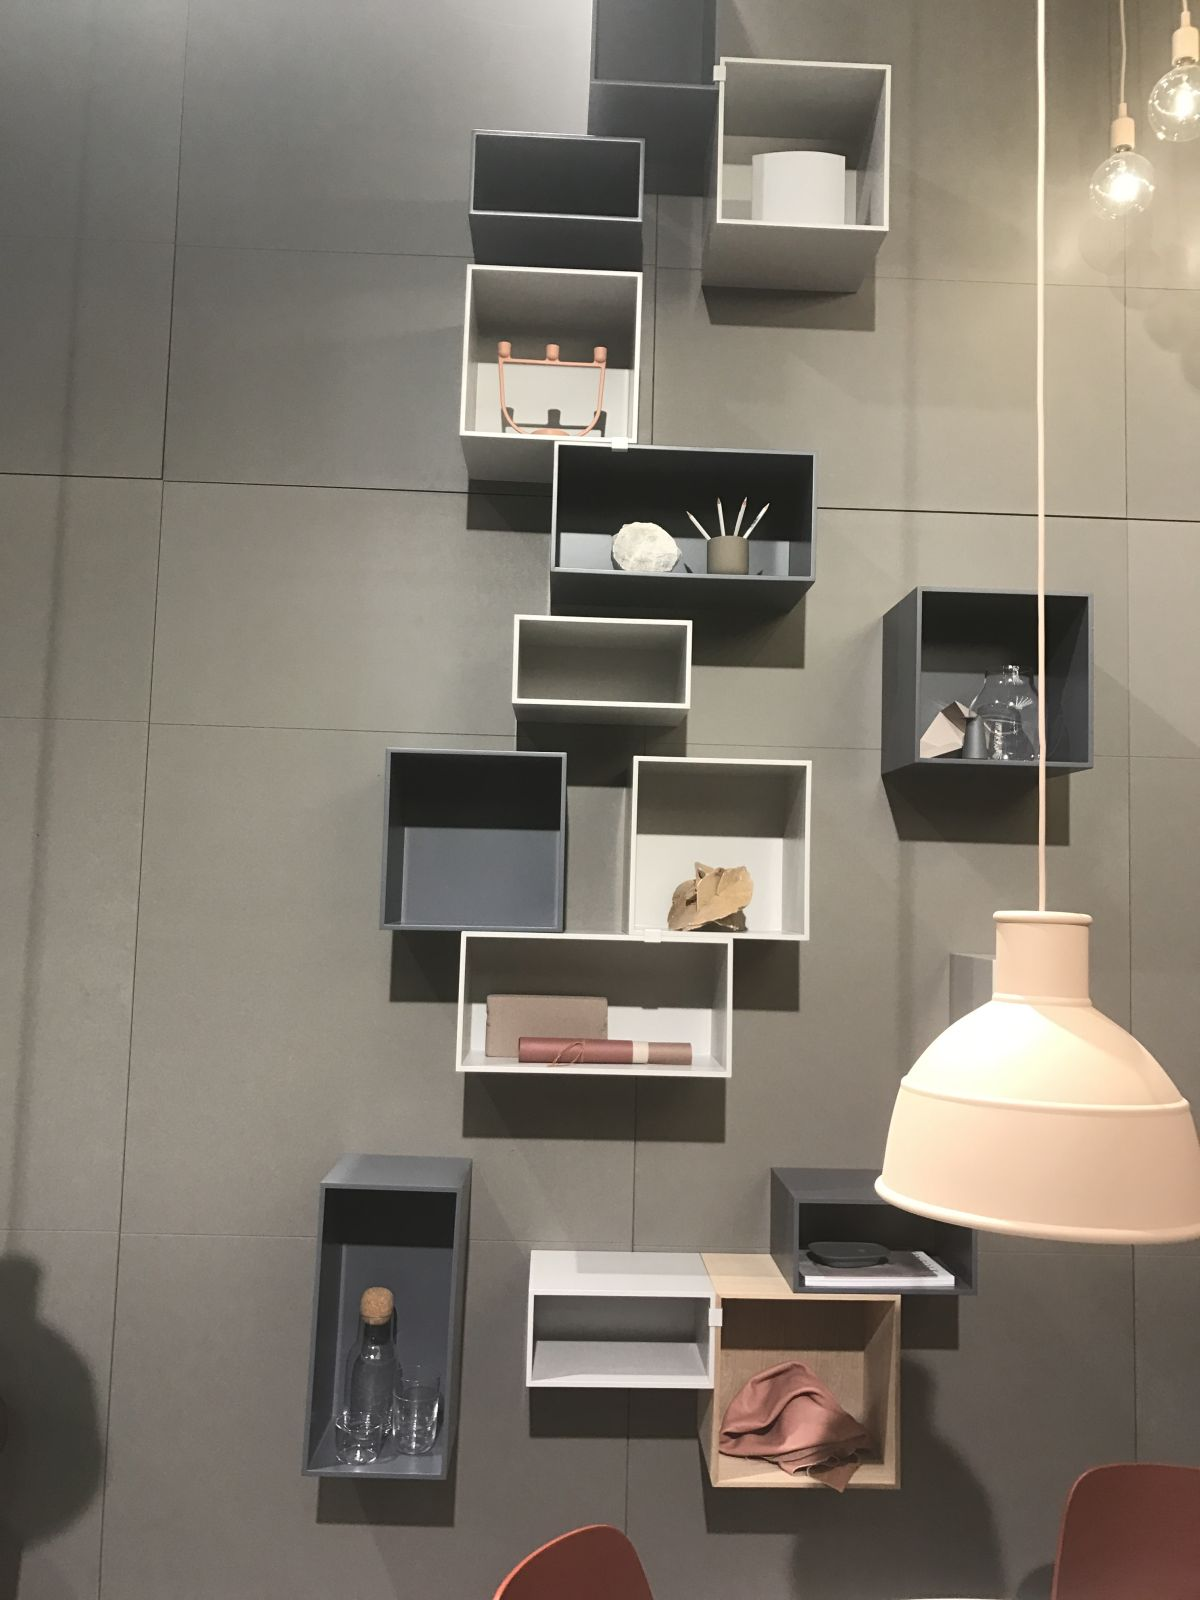 Box shelves are like puzzle pieces. They can be mixed and matched to create all sorts of cool installations